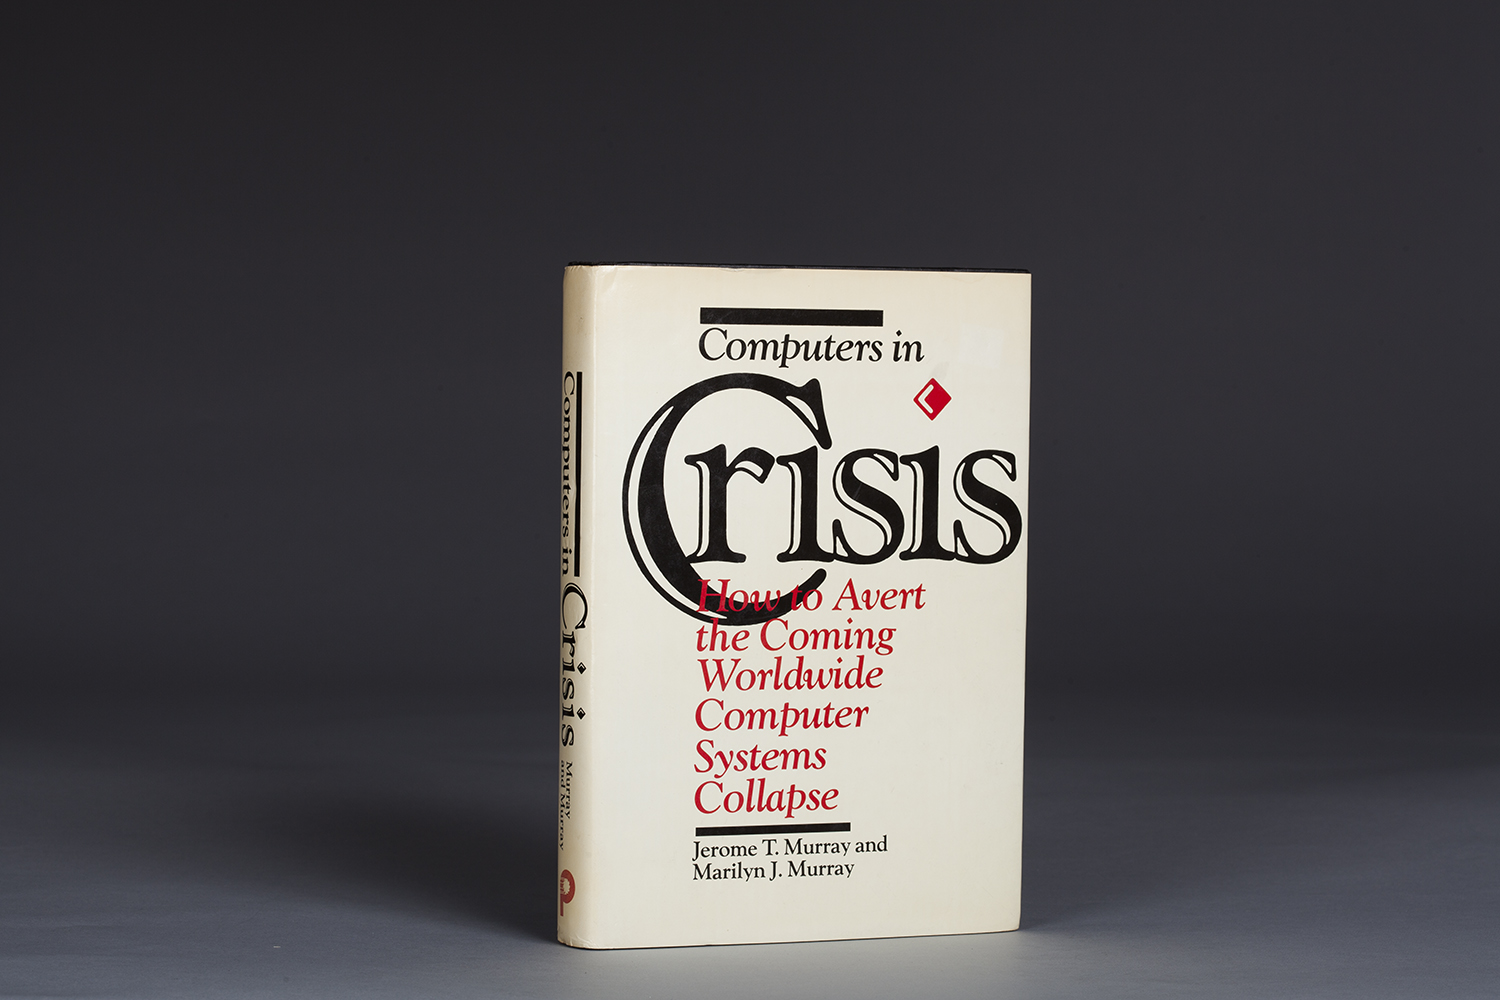 Computers in Crisis - 9866 Cover.jpg